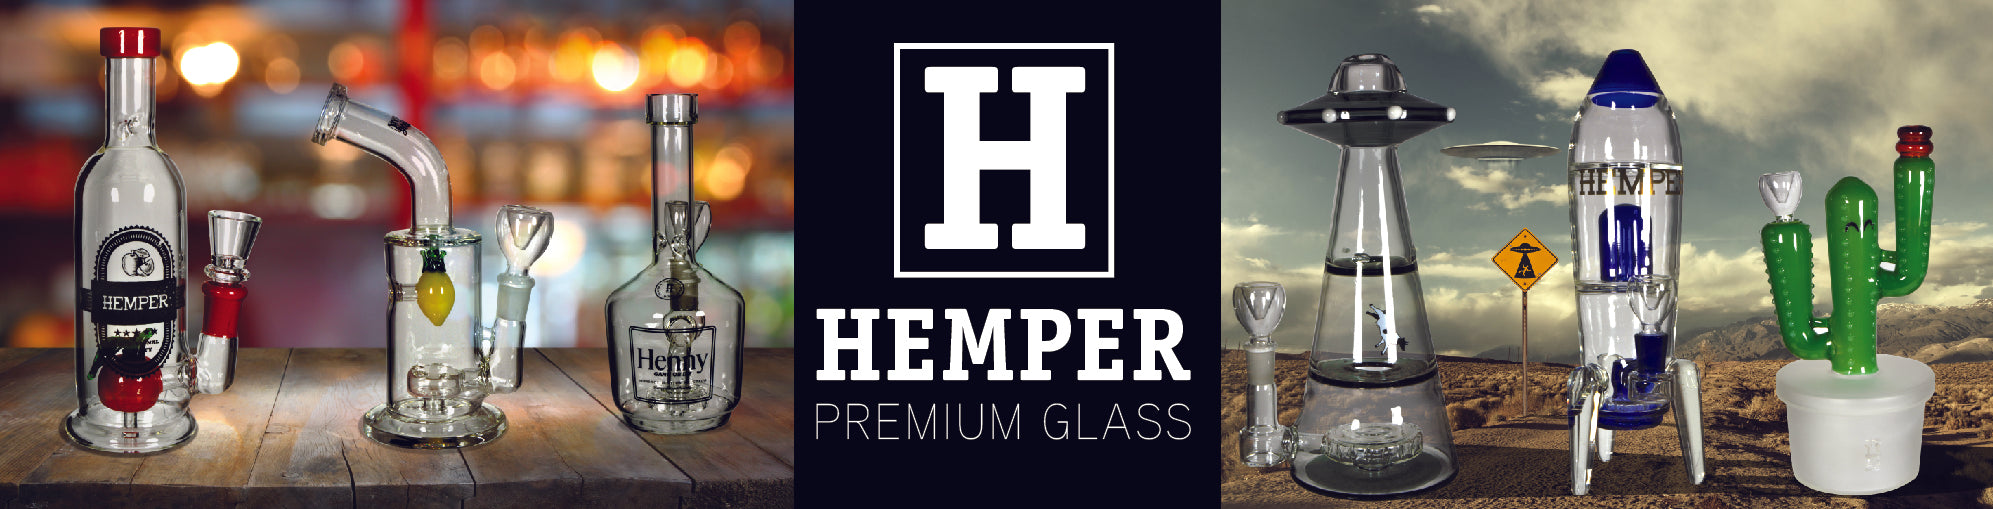 Hemper Co Premium Glass